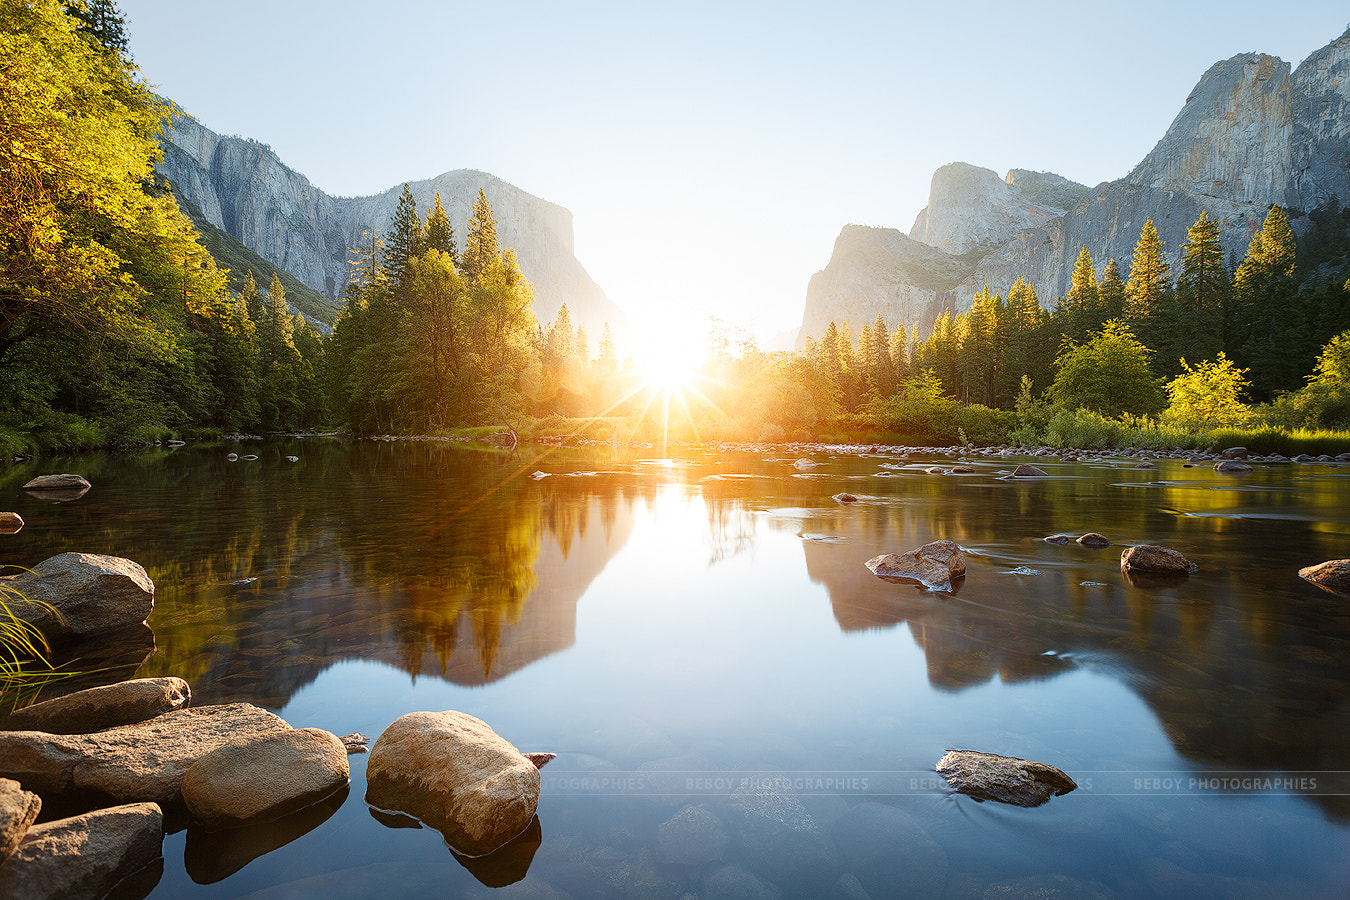 Photograph Let the sun shine in Yosemite valley by Beboy Photographies on 500px